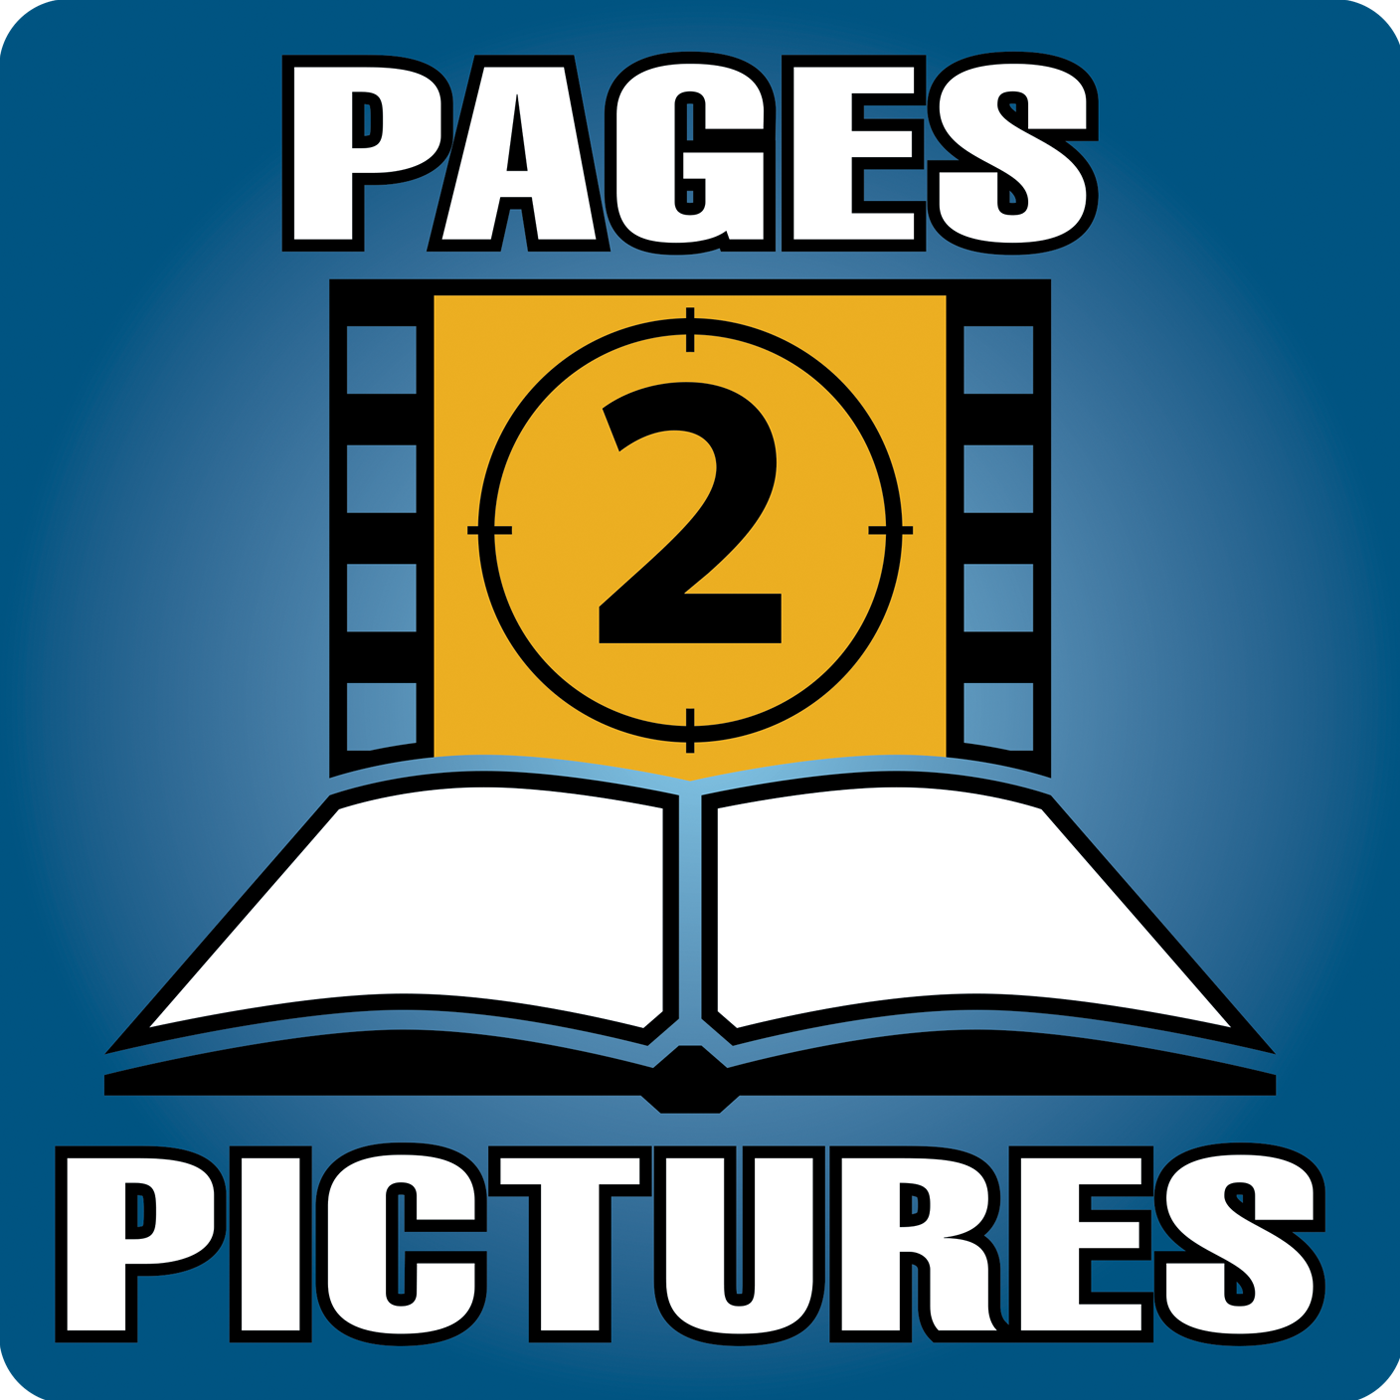 Pages 2 Pictures Podcast logo